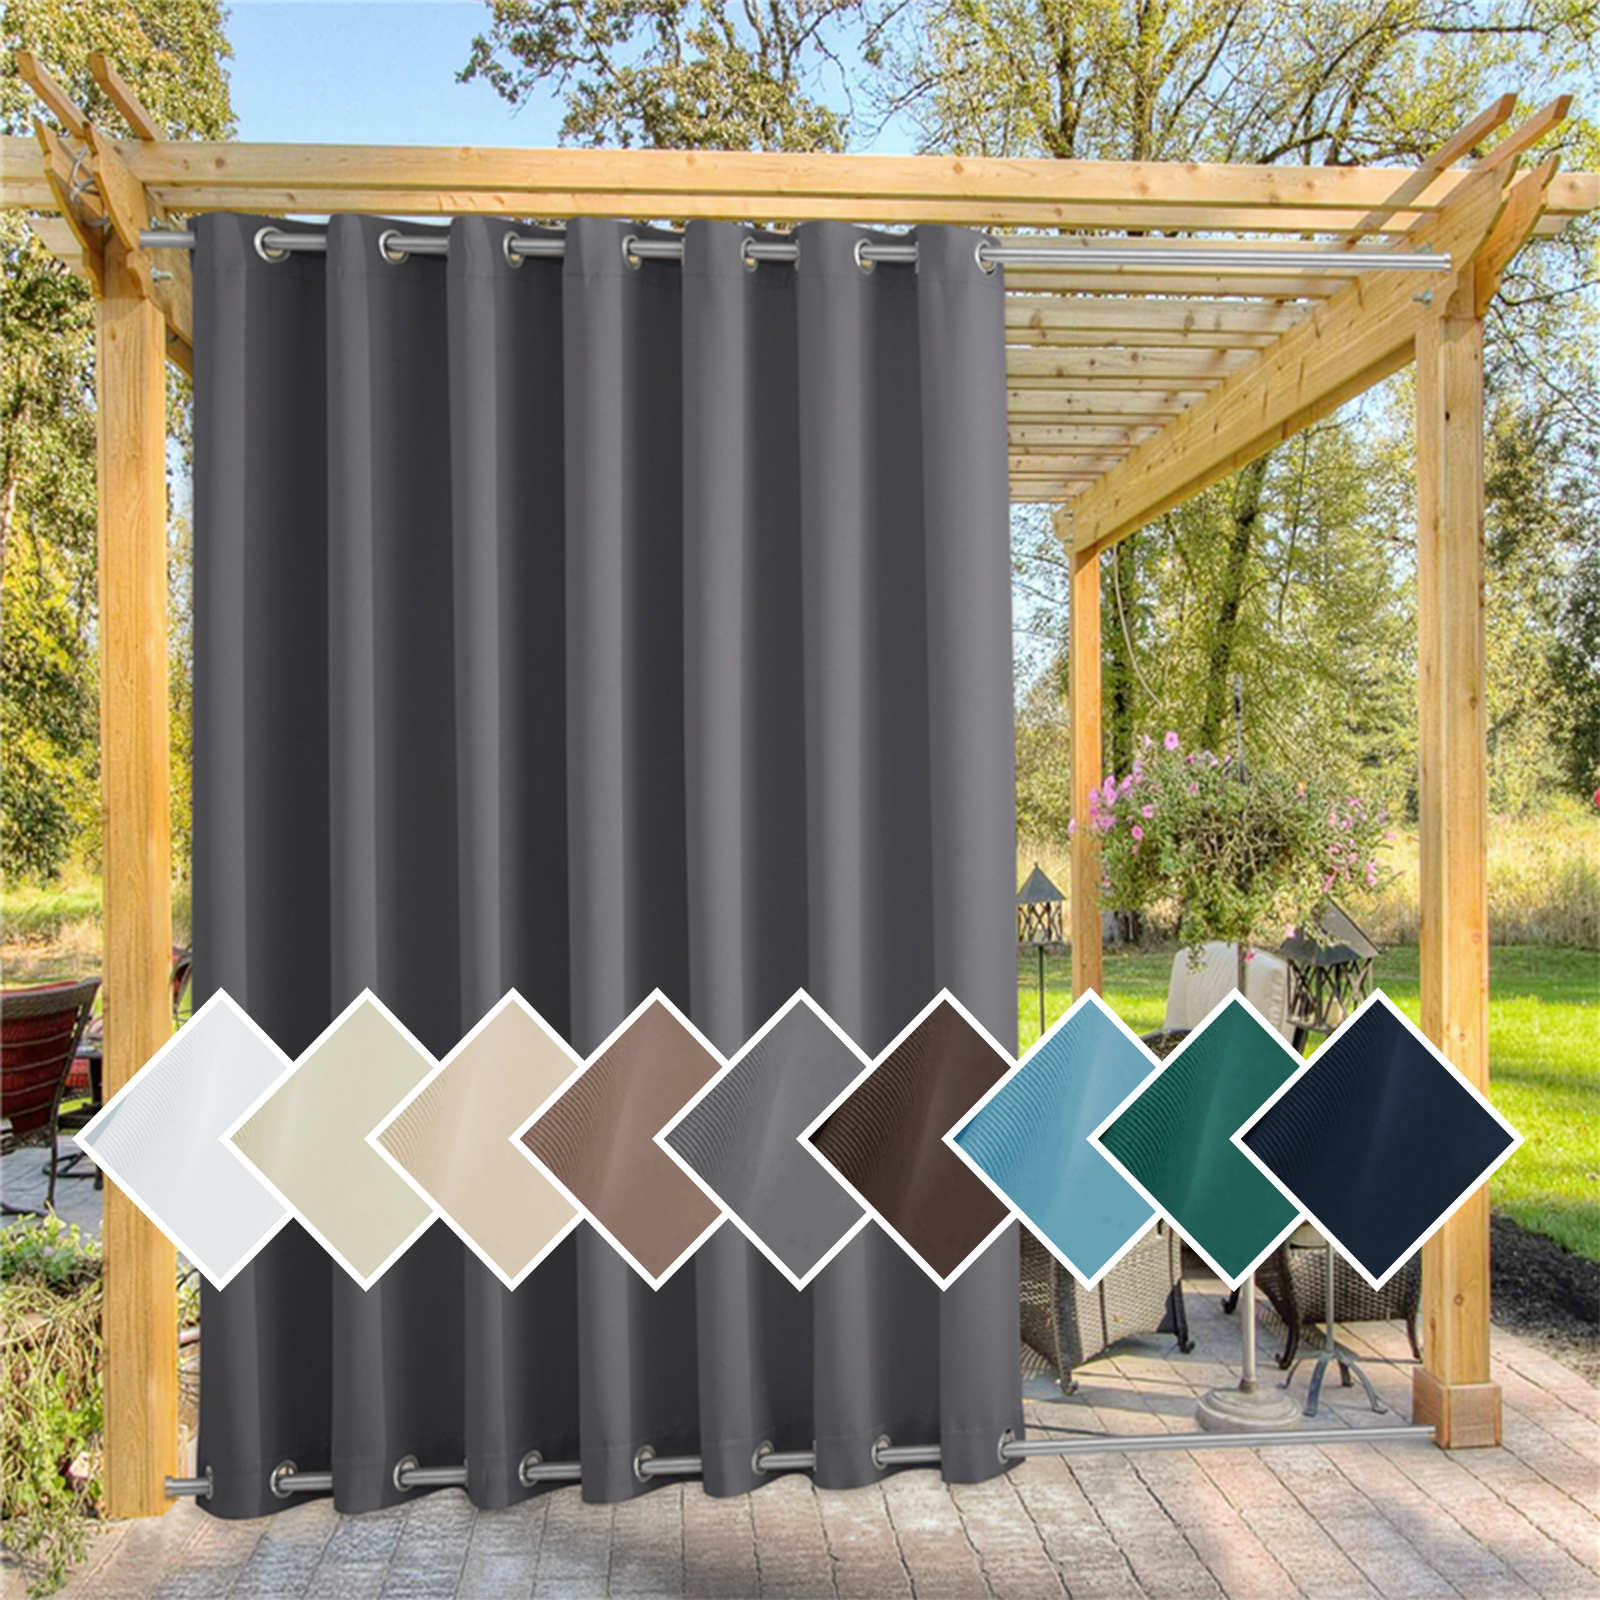 custom outdoor curtain for patio waterproof windproof thermal insulated top and bottom fixed rustproof grommets light block outdoor curtain drape